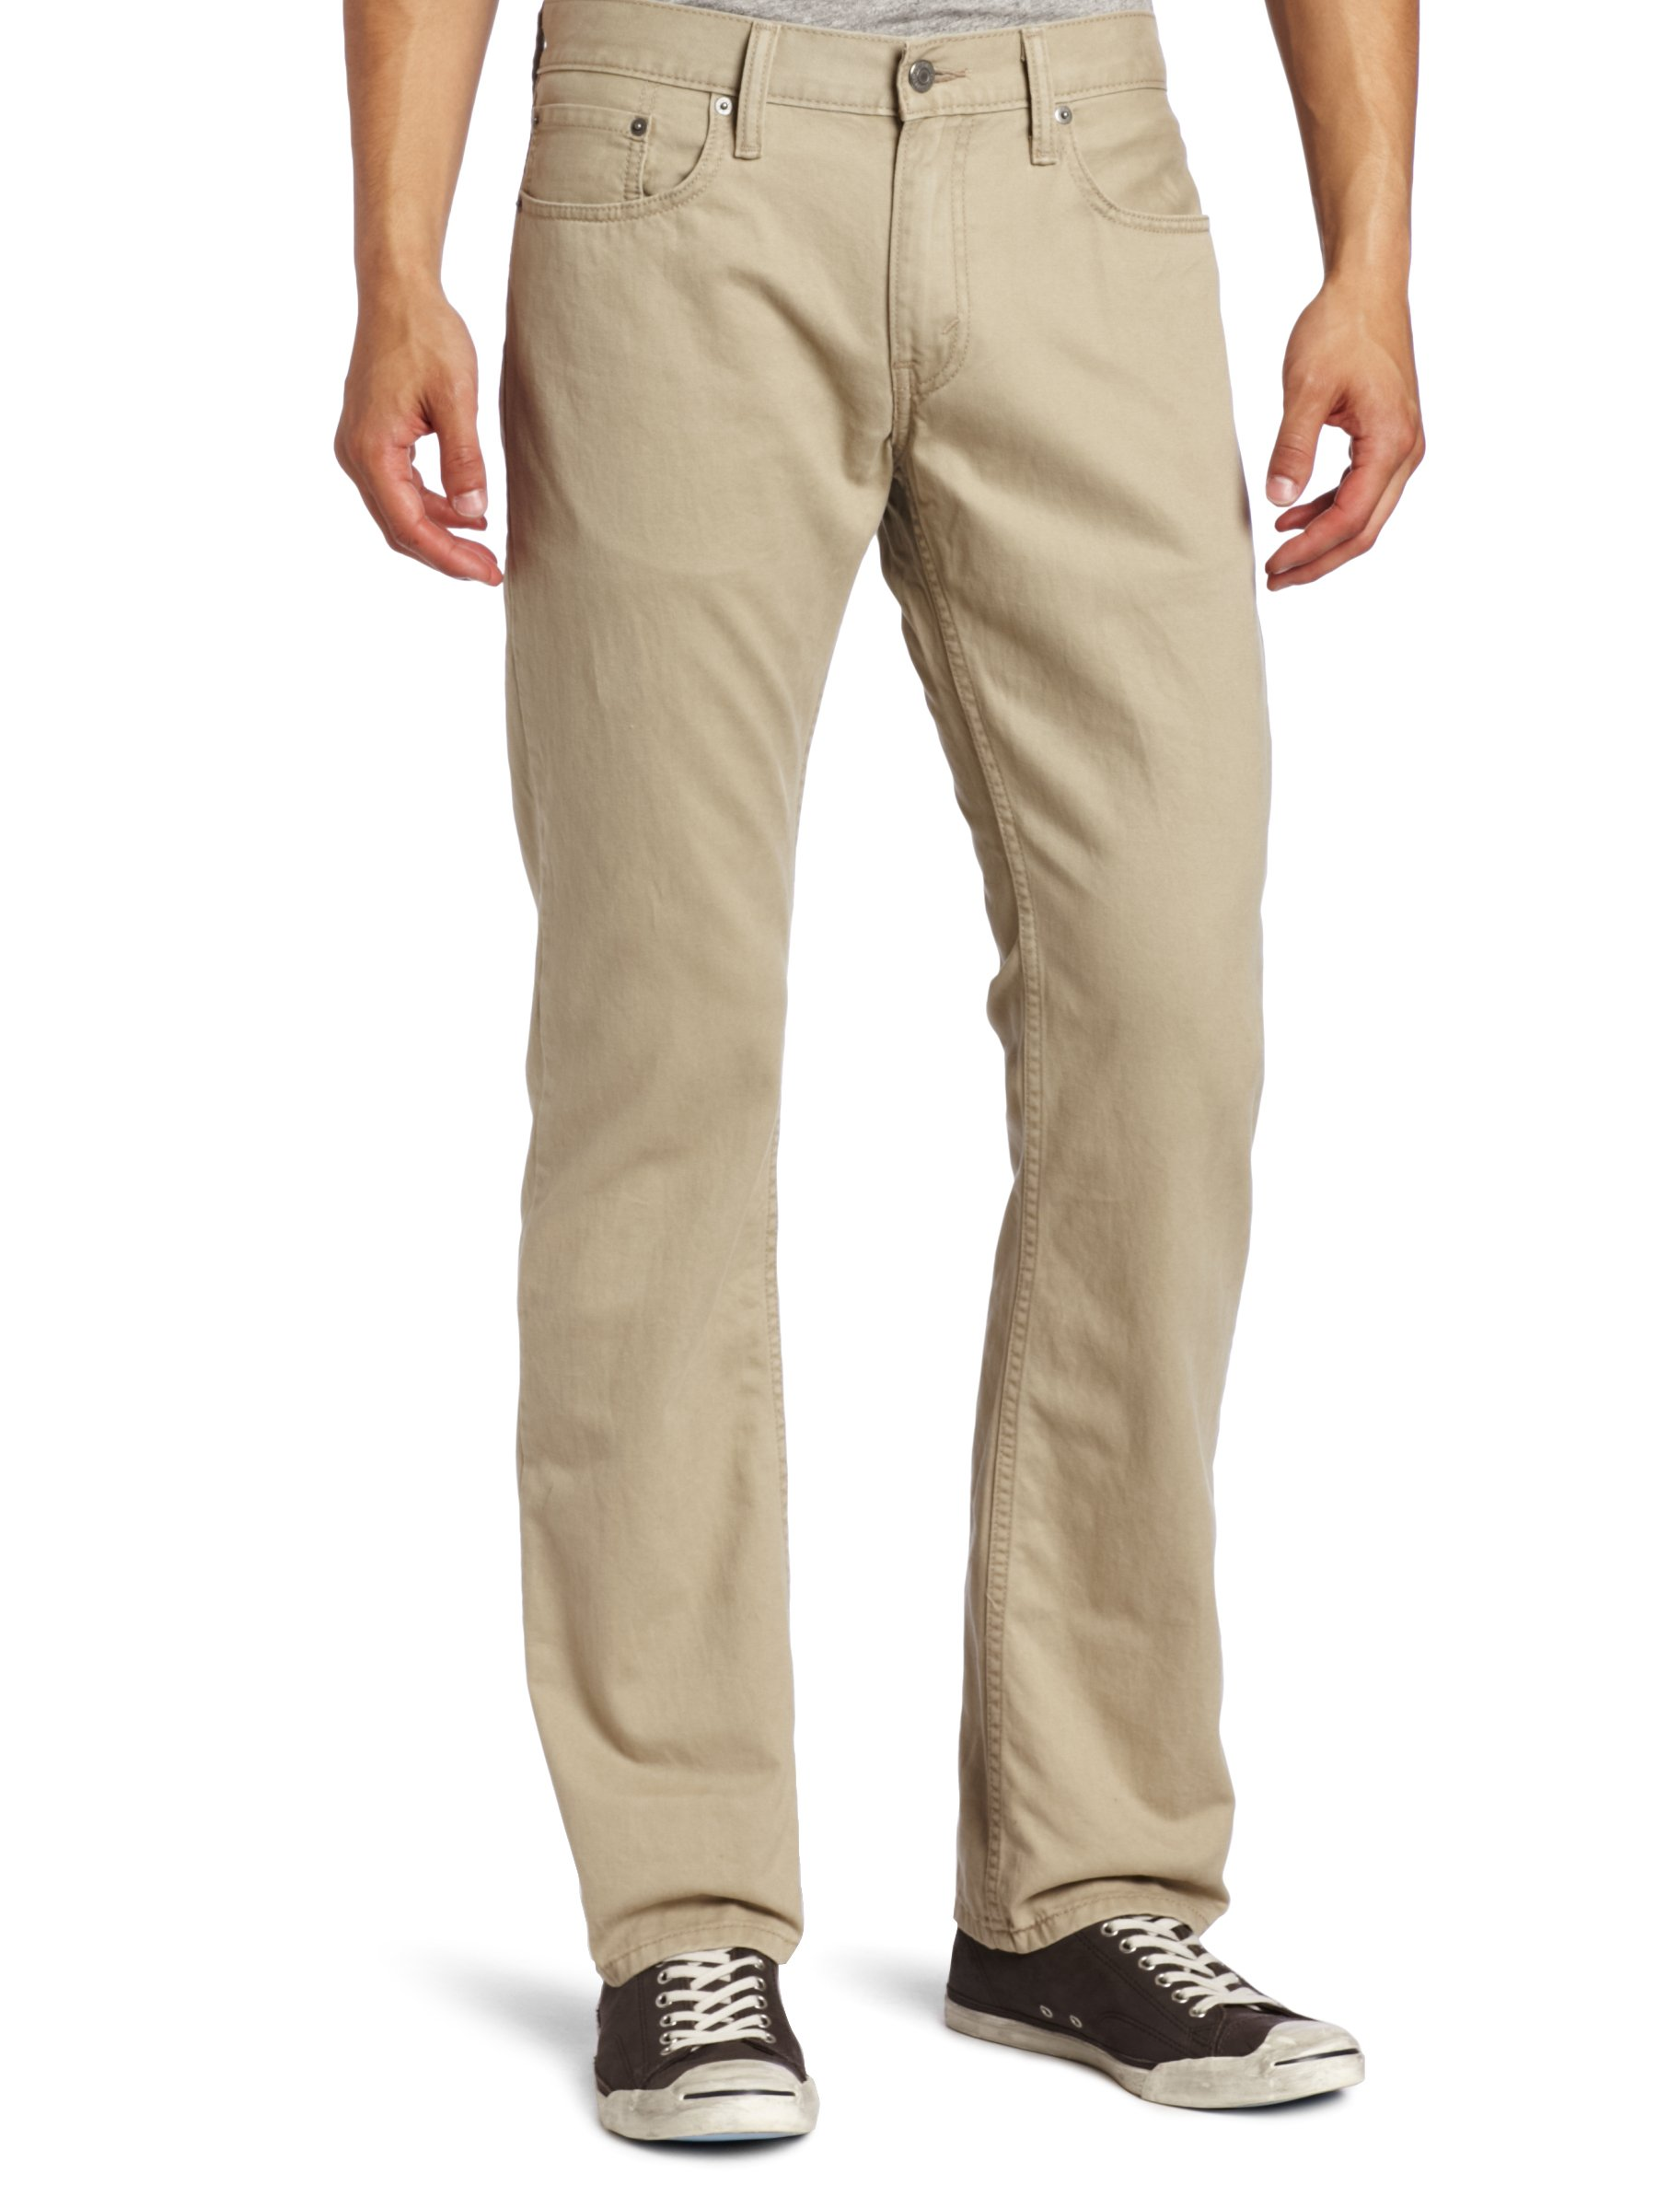 Levi's Men's 514 Straight Leg Twill Pant, Chinchilla, 32x36